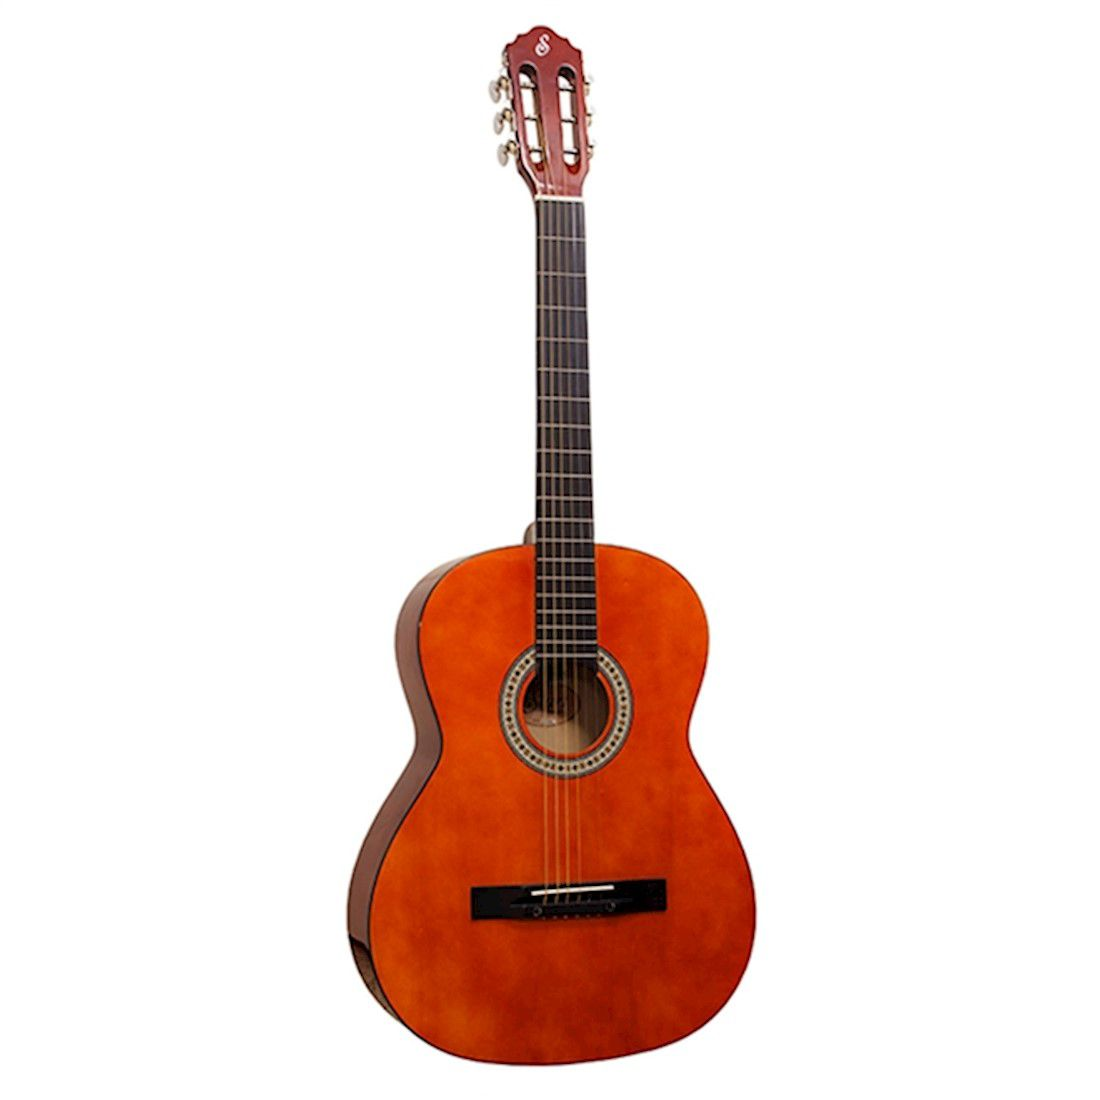 Violão Acústico Giannini N-14 Start Nylon Natural